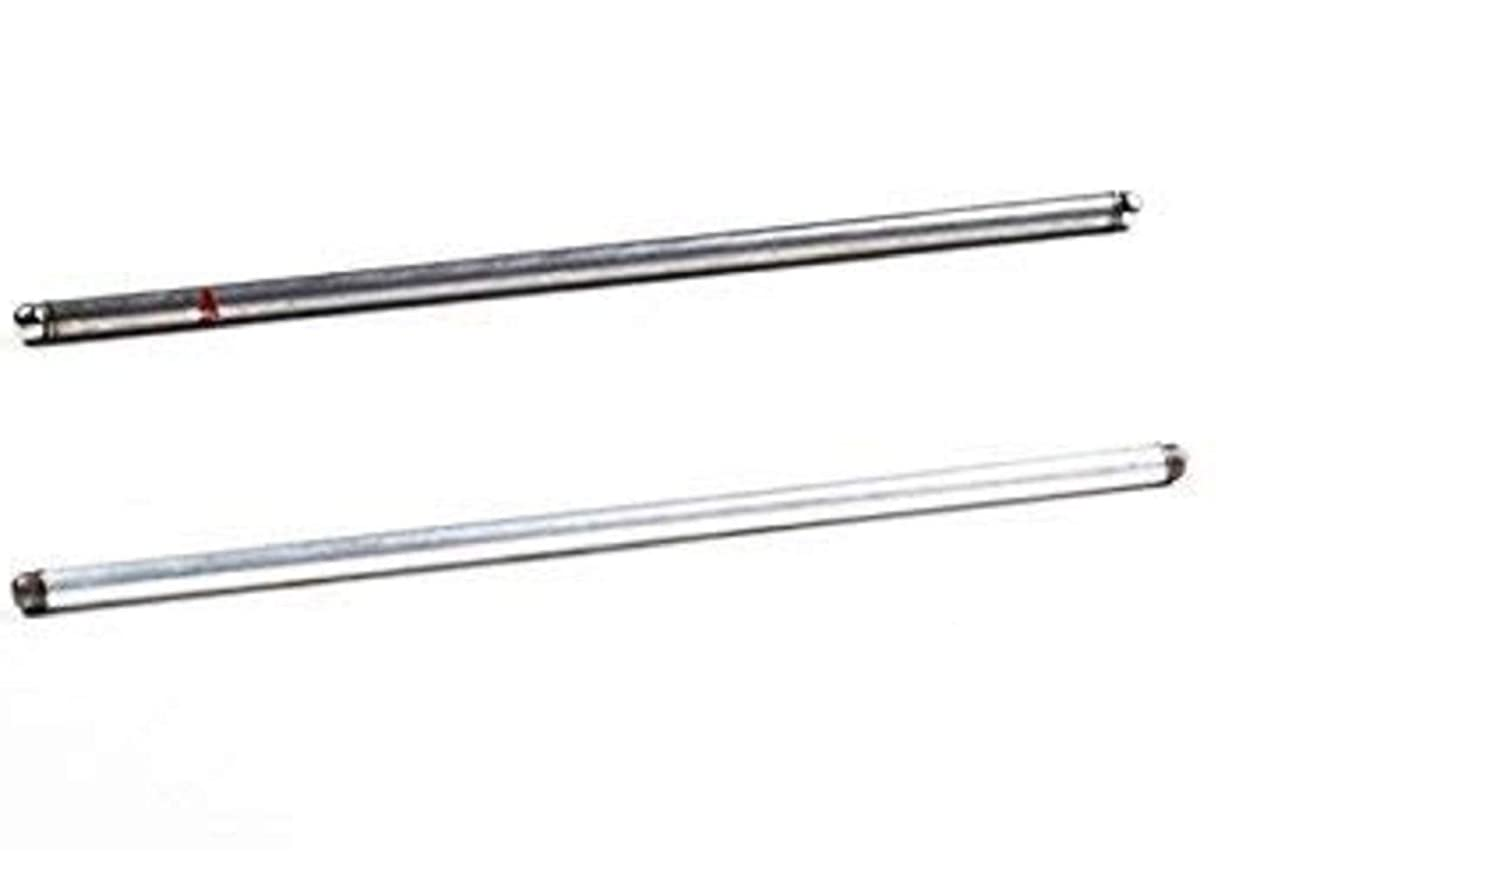 Briggs & Stratton 692003 KIT (Intake & Exhaust Push Rod Set)